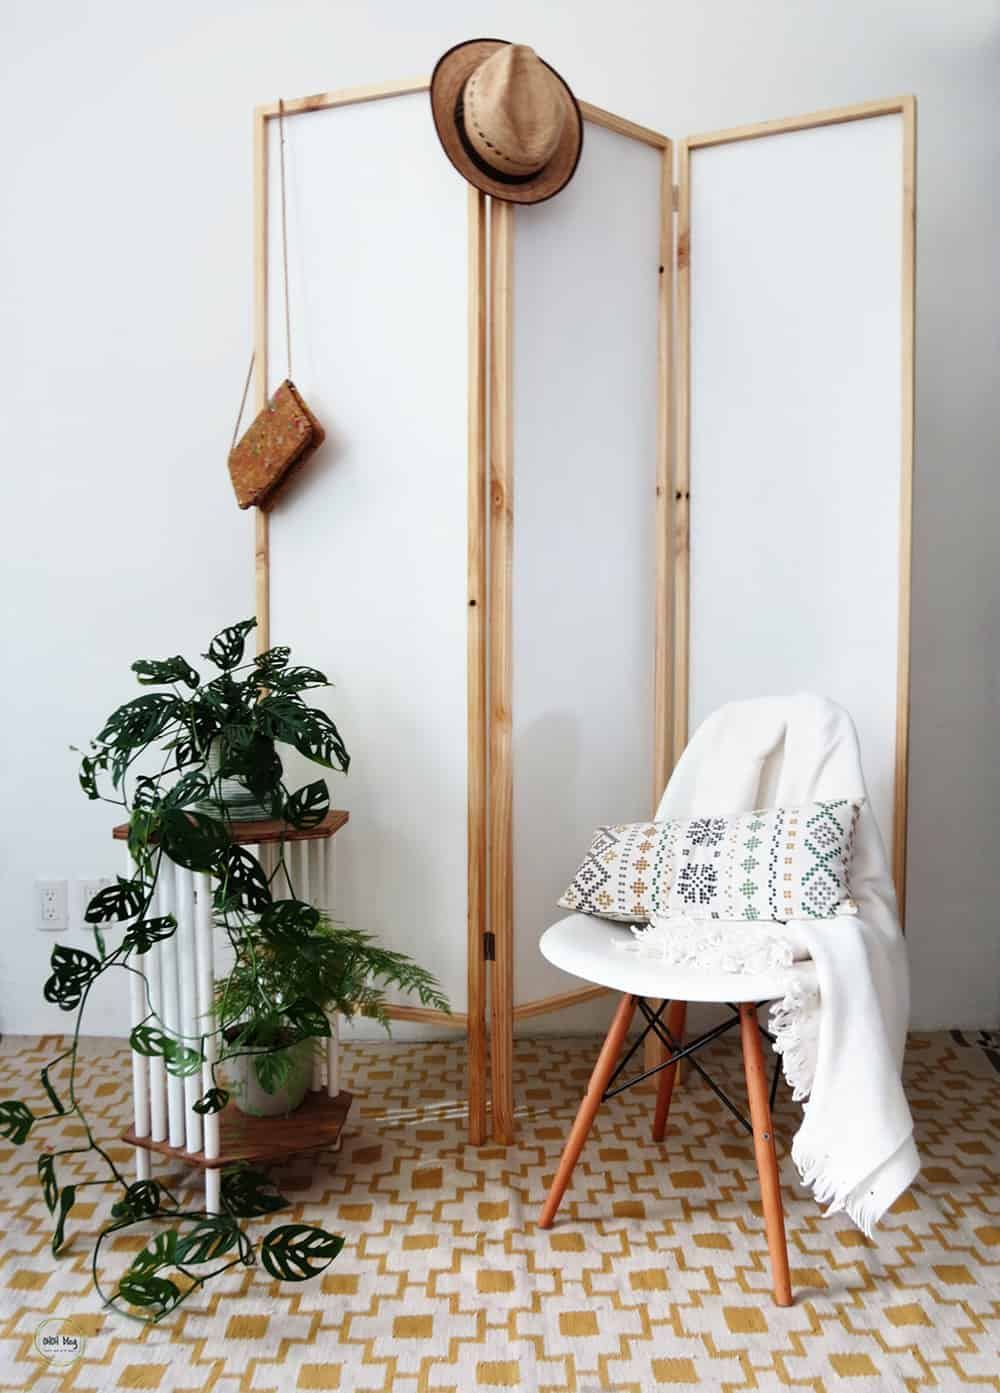 How to easily build a room divider